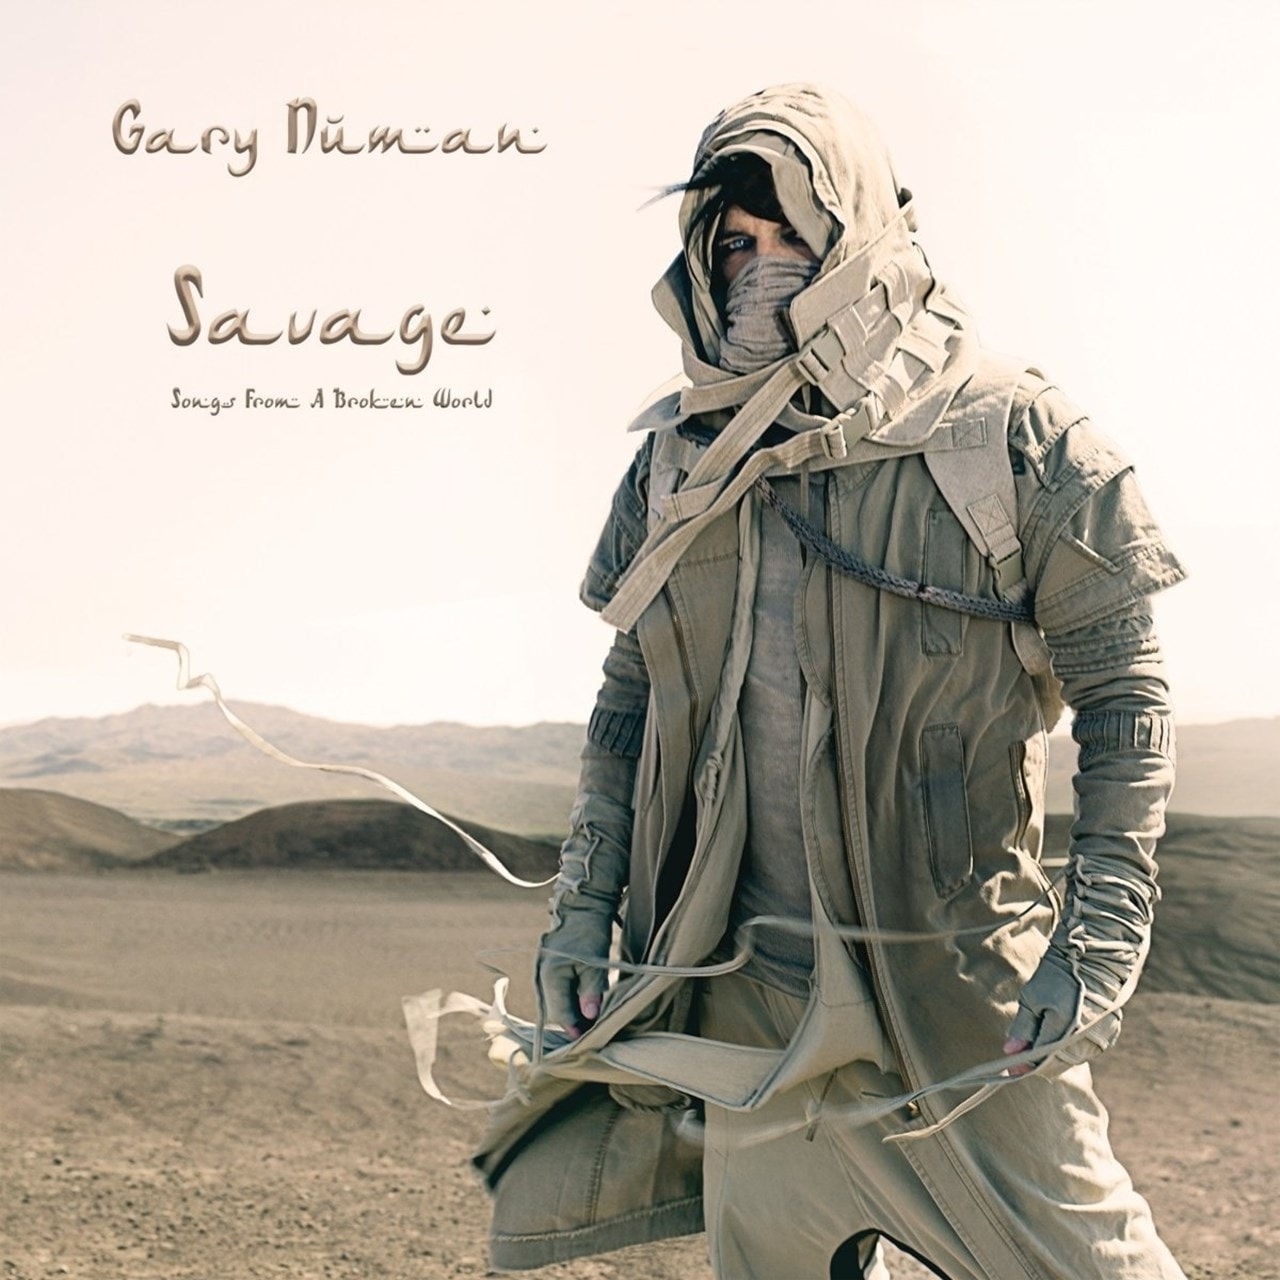 Savage (Songs from a Broken World) - 1